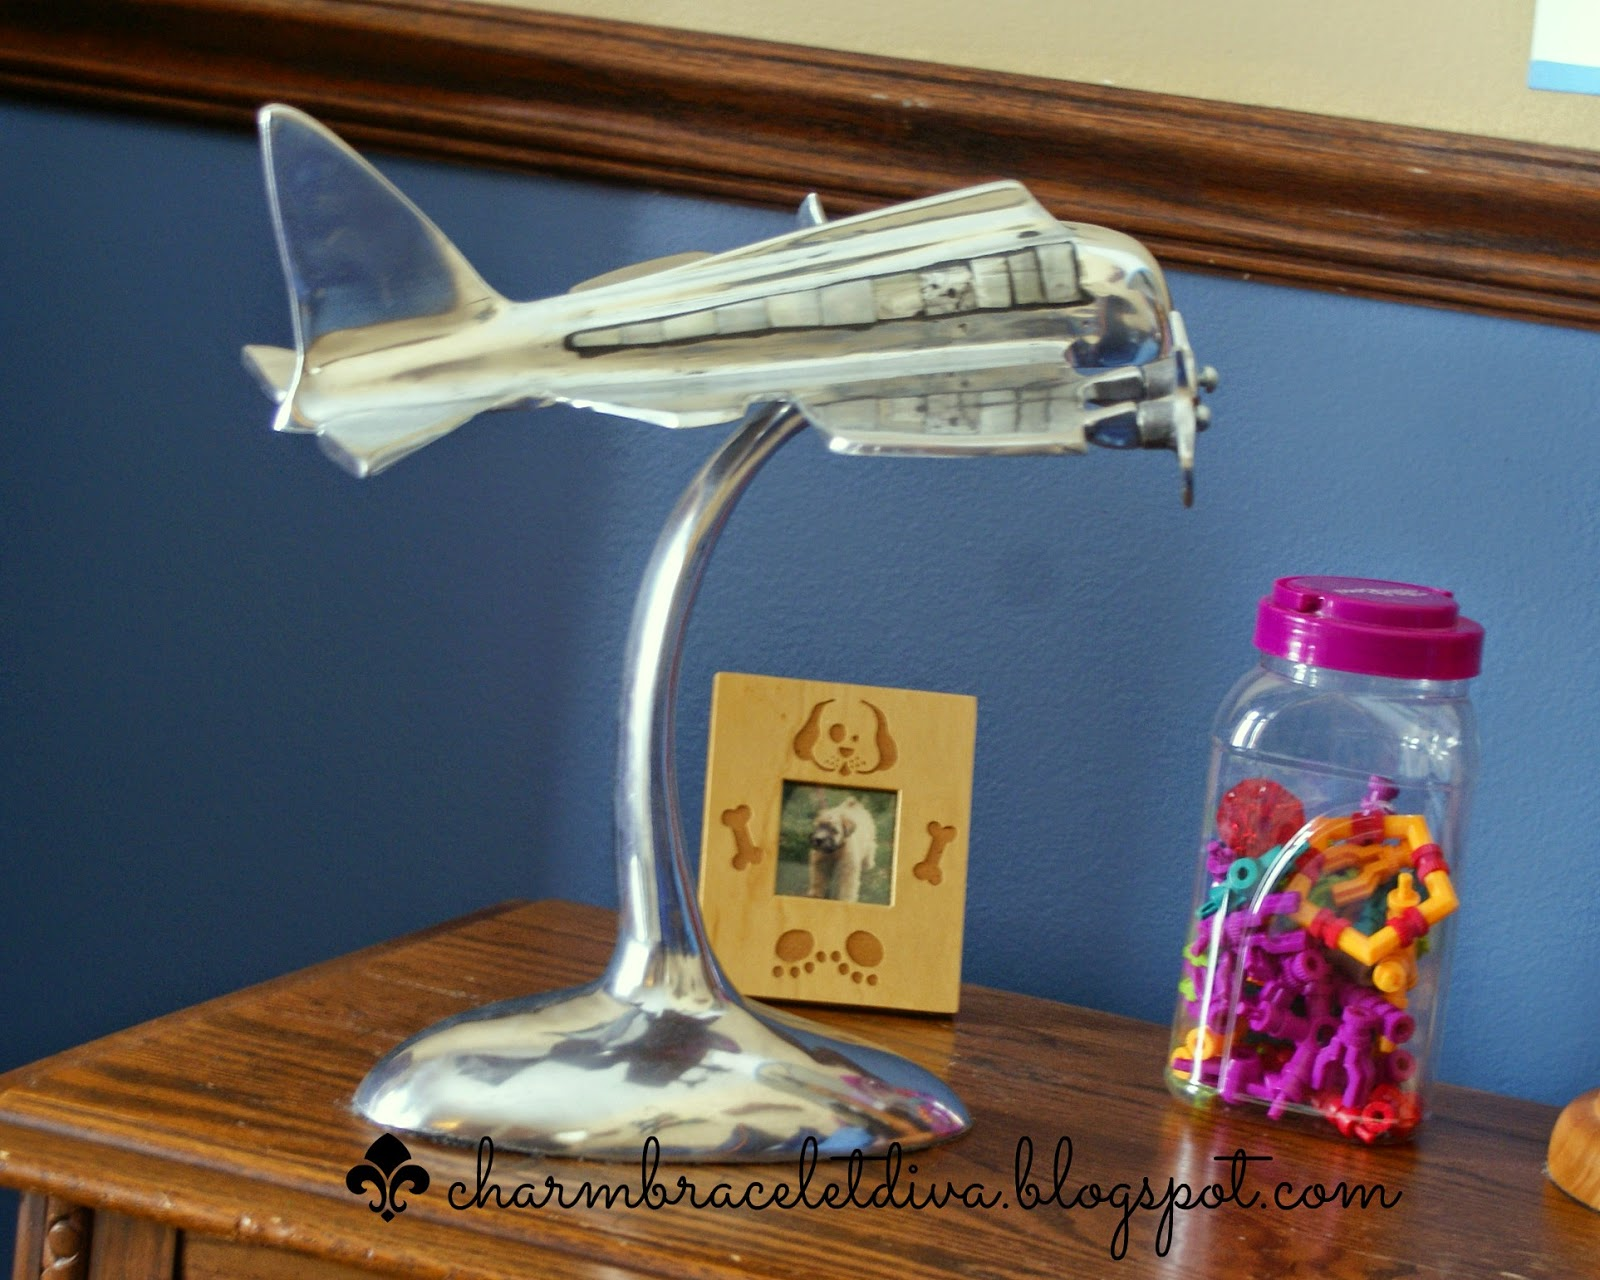 silver aluminum desk top airplane model on a bedside table